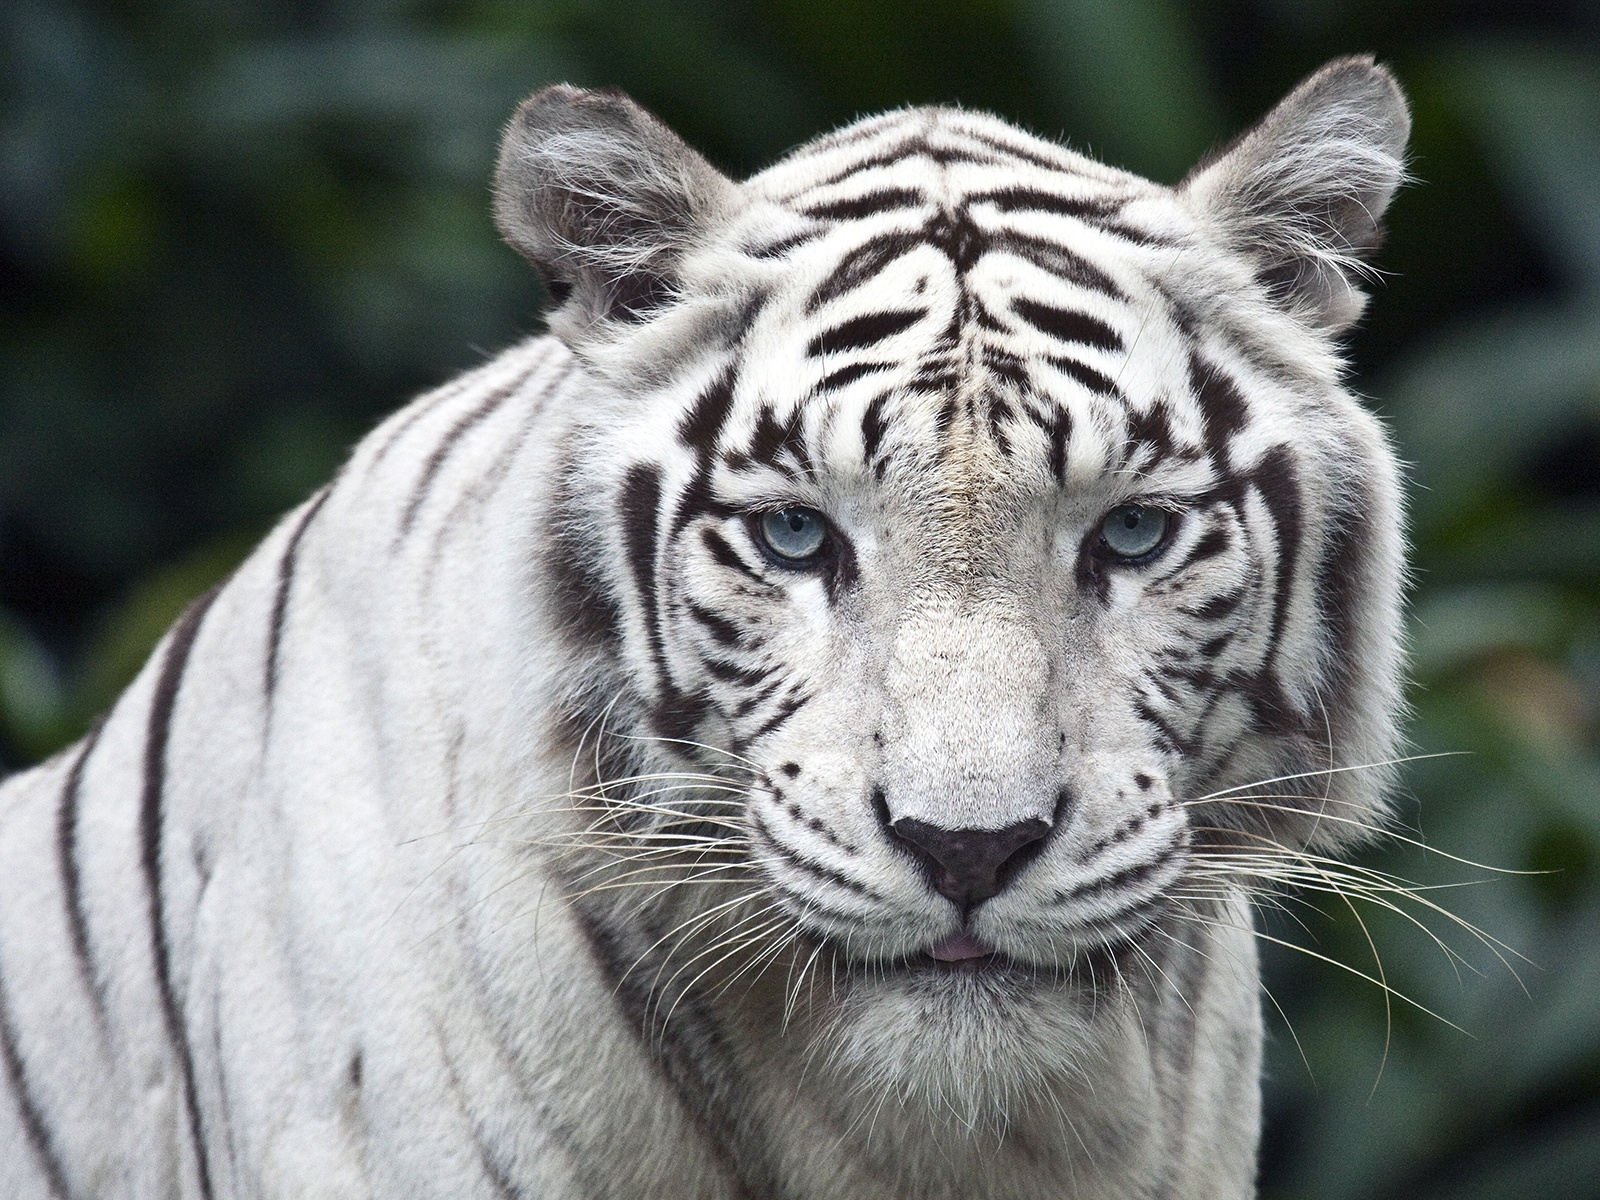 1600x1200 White tiger desktop PC and Mac wallpaper 1600x1200